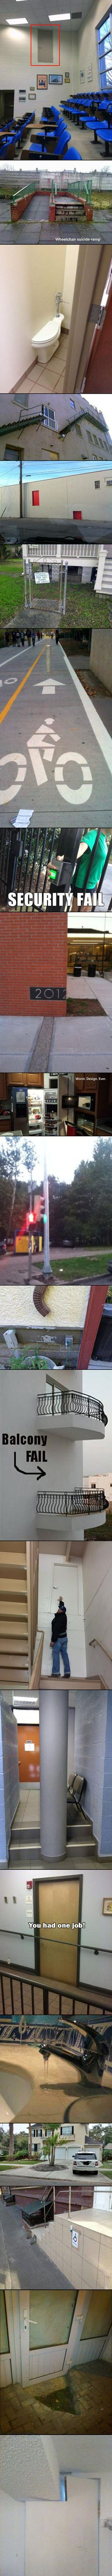 If you thought an improperly installed door handle was something to laugh at, check out these bizarre, yet real, construction fails.